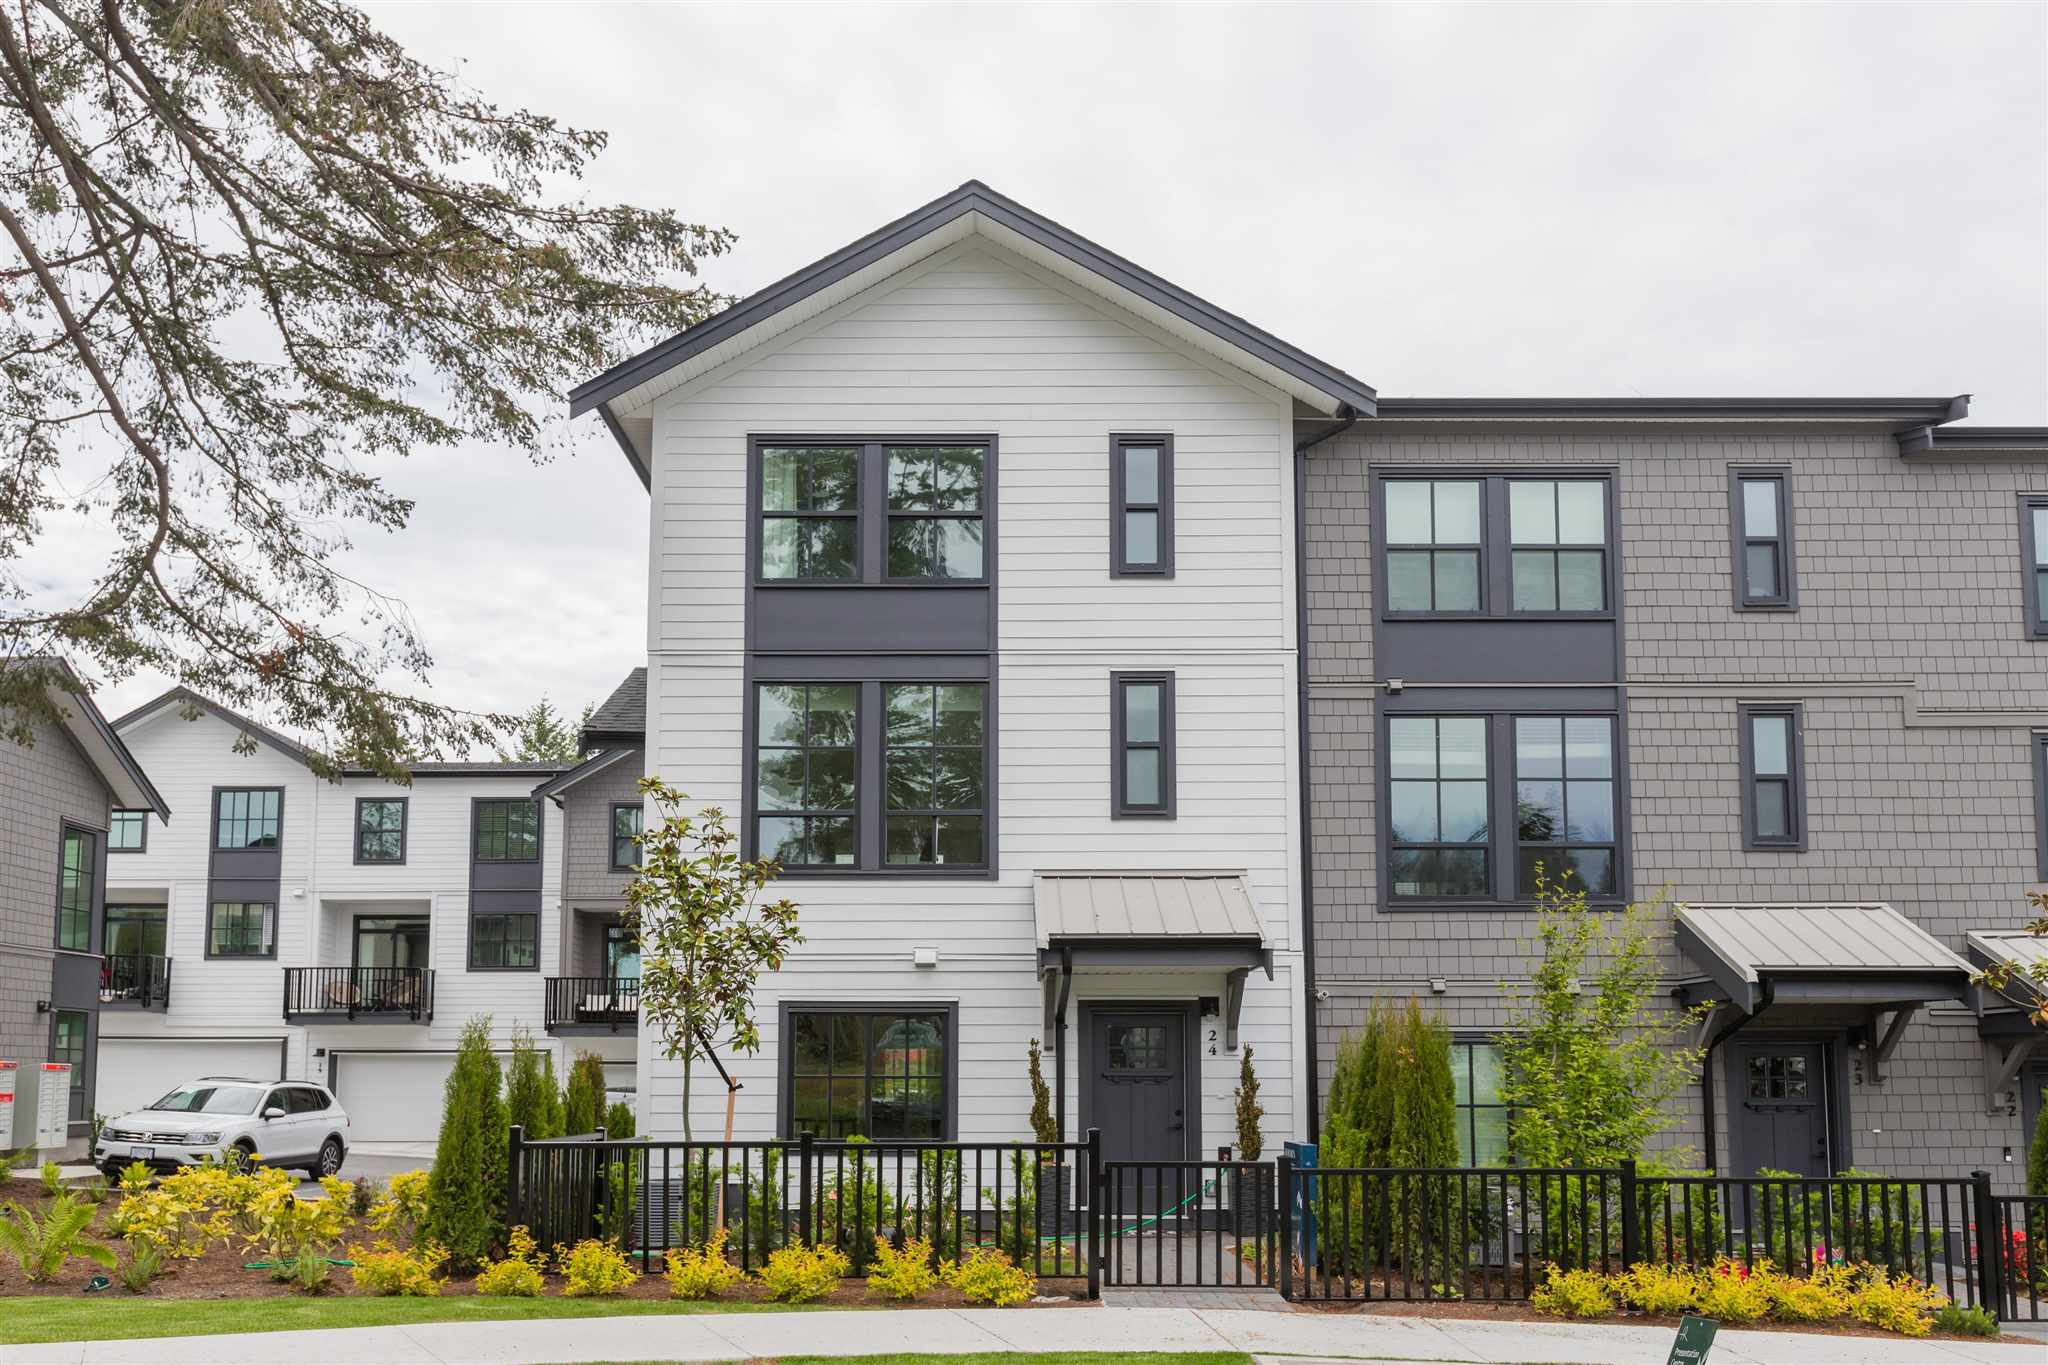 18 16565 24A STREET - Grandview Surrey Townhouse for sale, 4 Bedrooms (R2605019) - #2